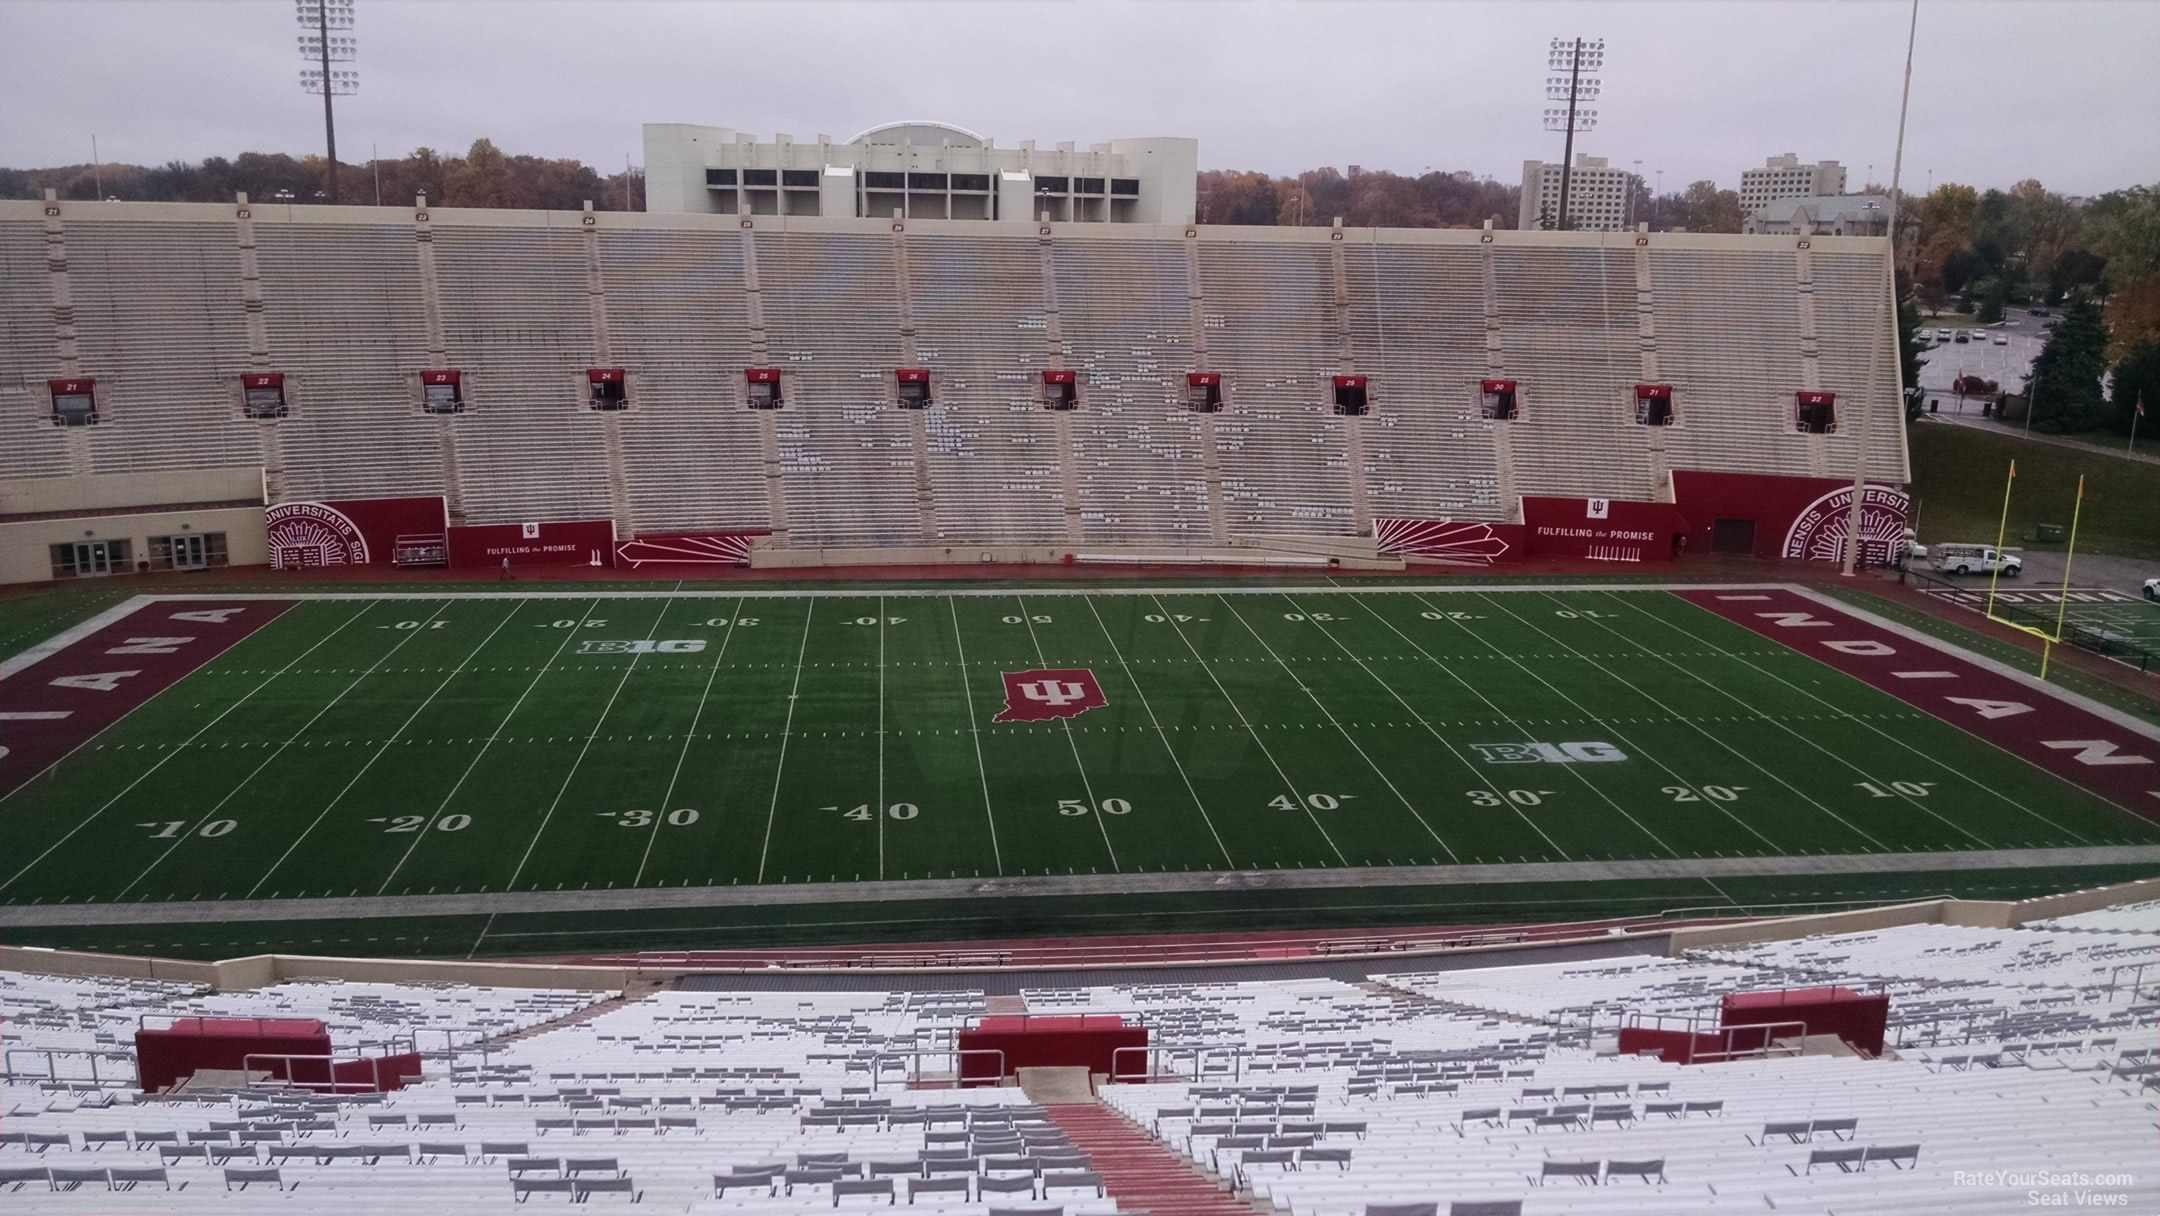 Seat View for Memorial Stadium - IN Section 107, Row 13